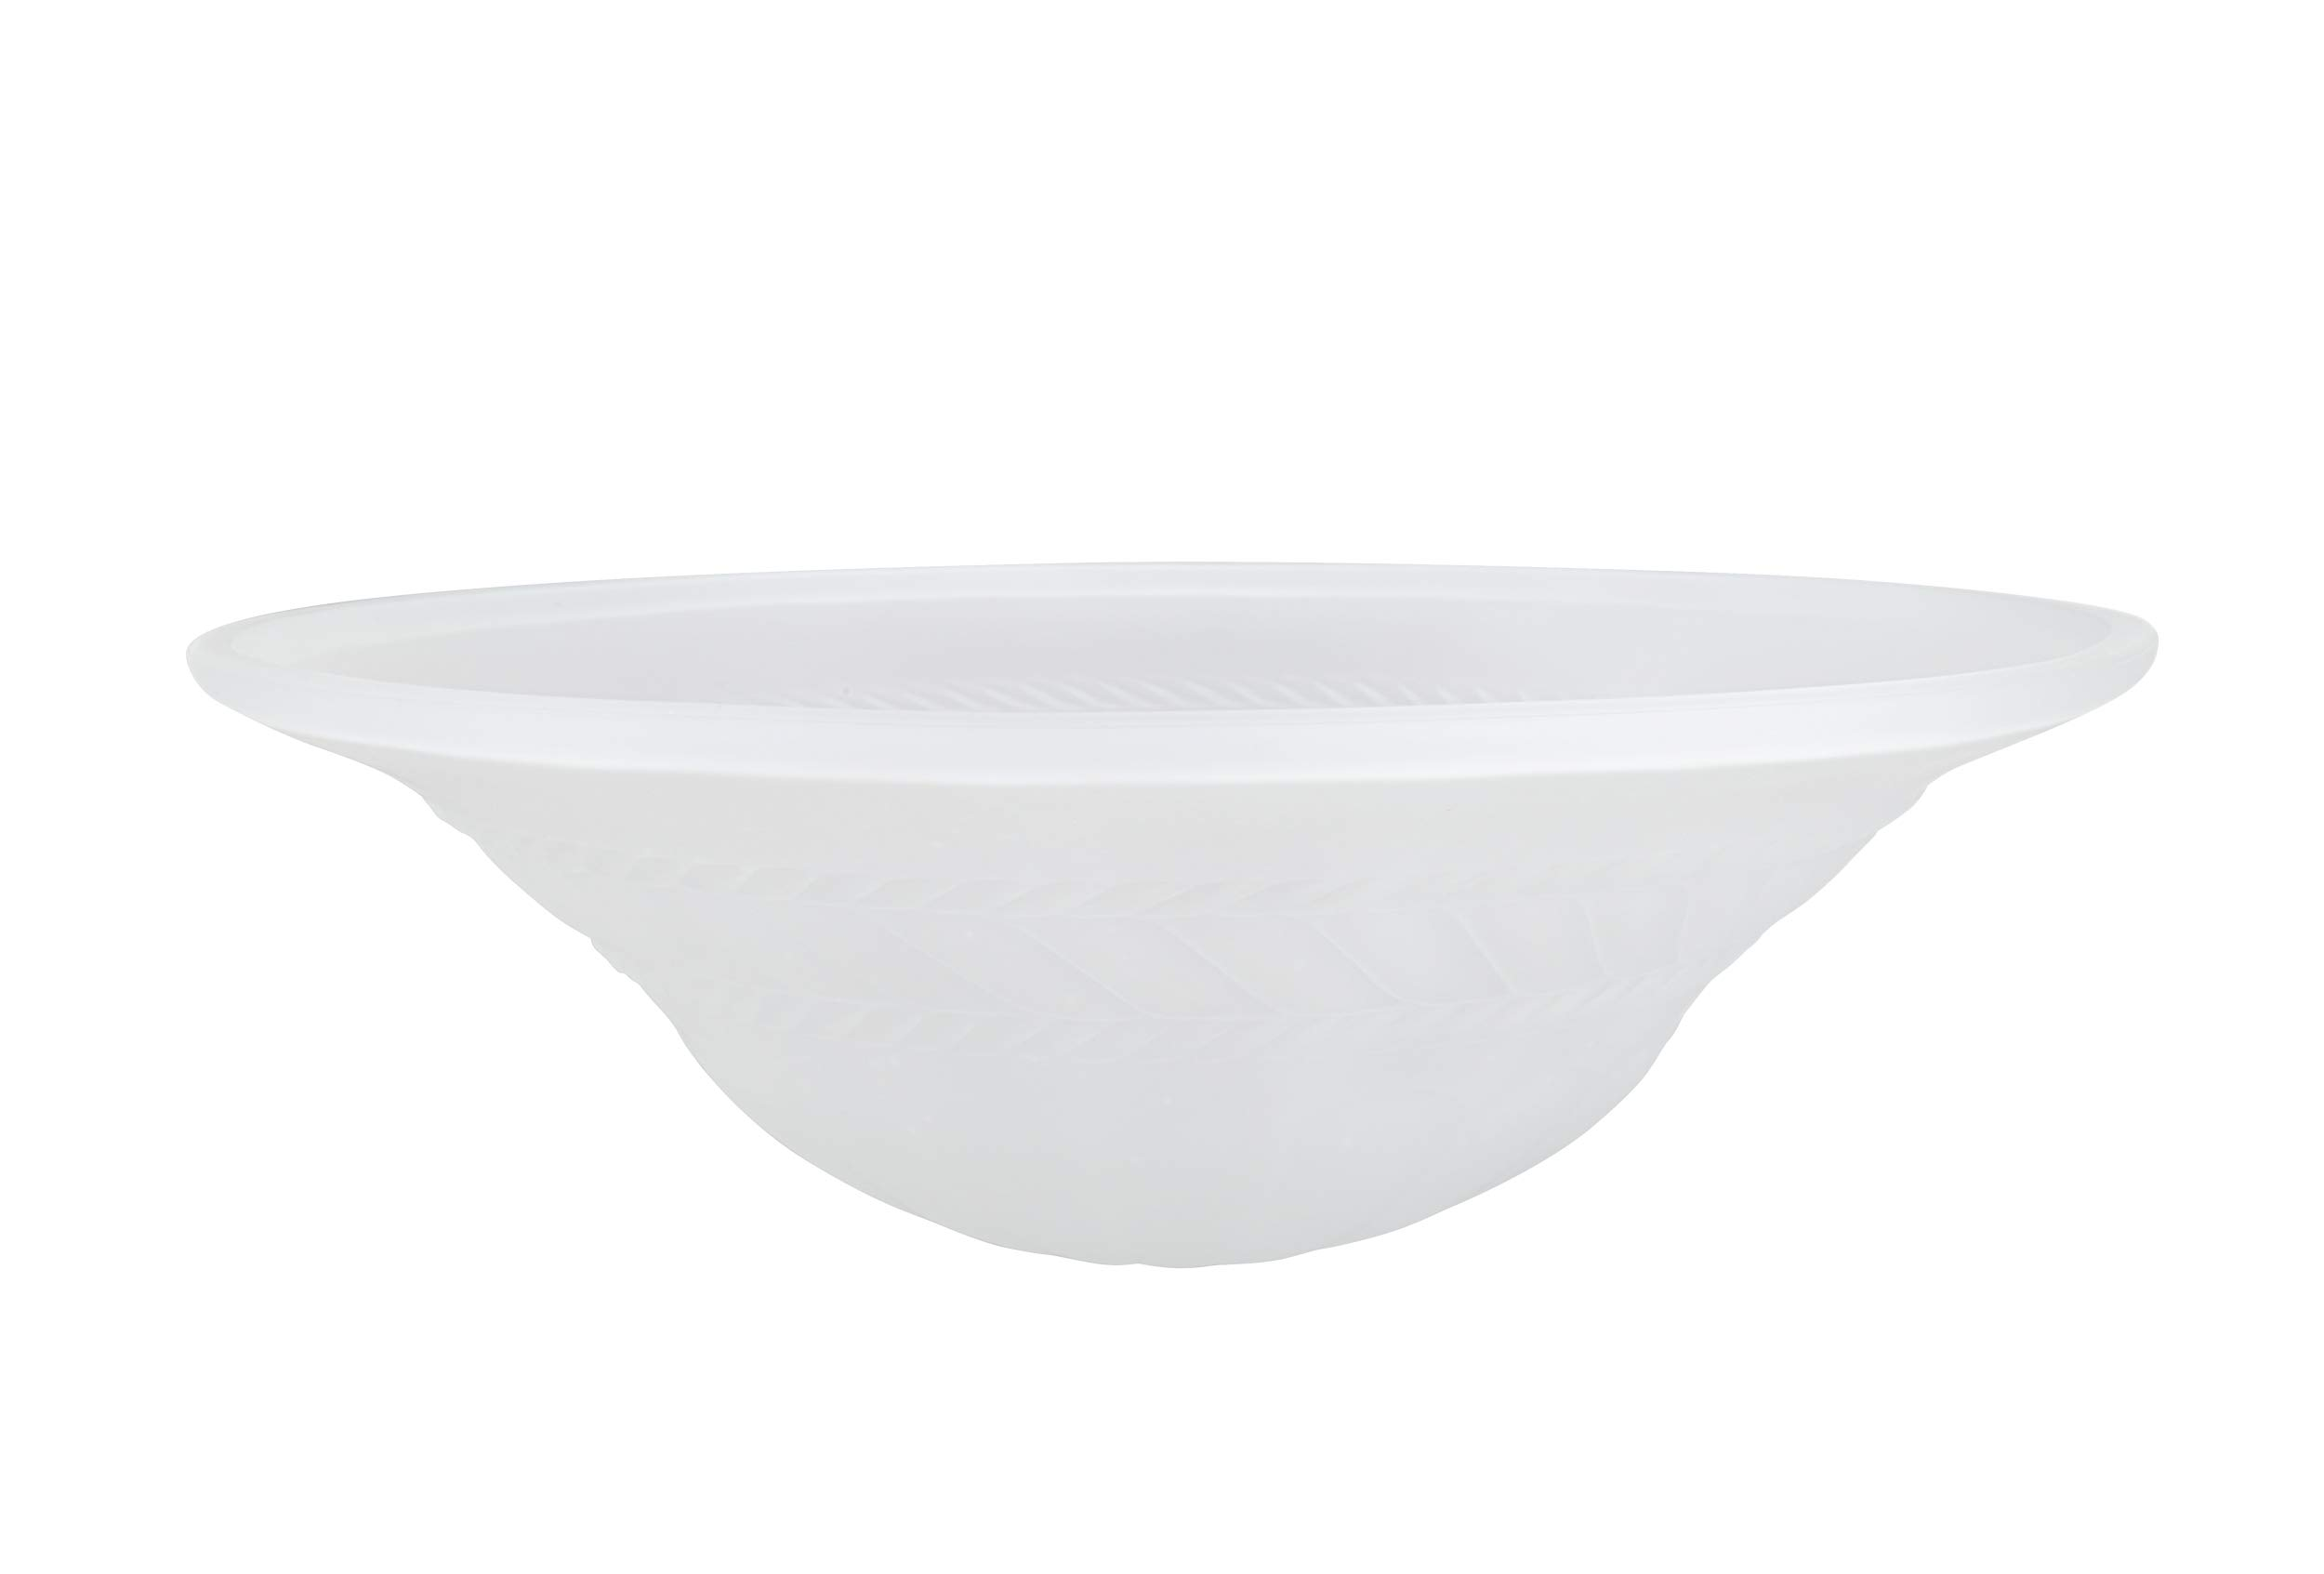 Aspen Creative 23070-01 Frosted Transitional Style Torchiere Shade, 6-7/8'' high x 20'' Diameter Replacement Glass,